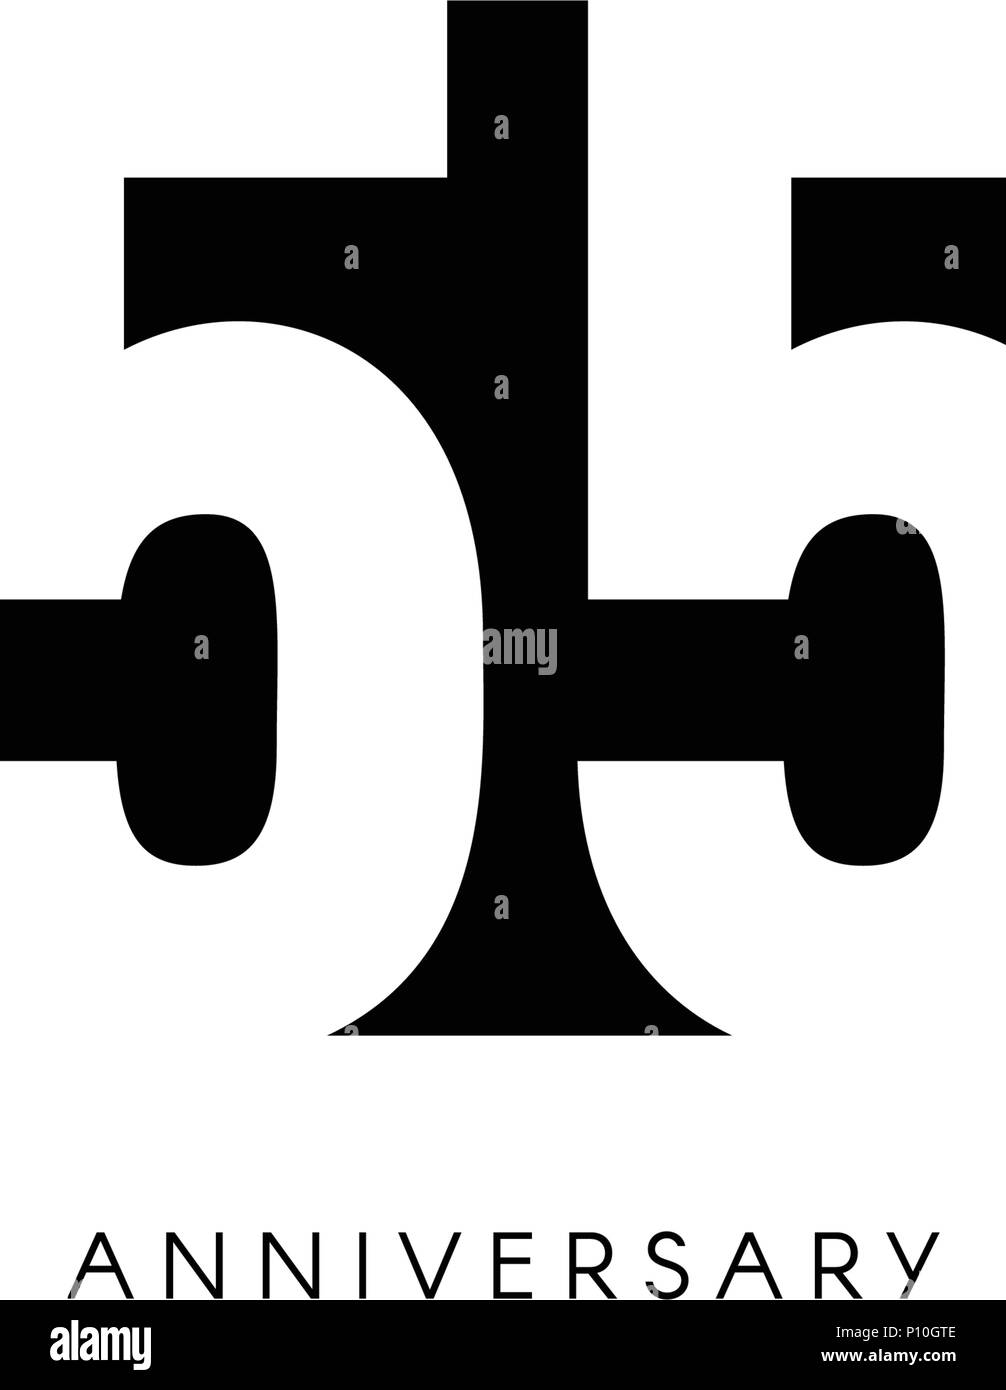 https www alamy com fifty five anniversary minimalistic logo fifty fifth years 55th jubilee greeting card birthday invitation 55 year sign black negative space vector illustration on white background image207152302 html